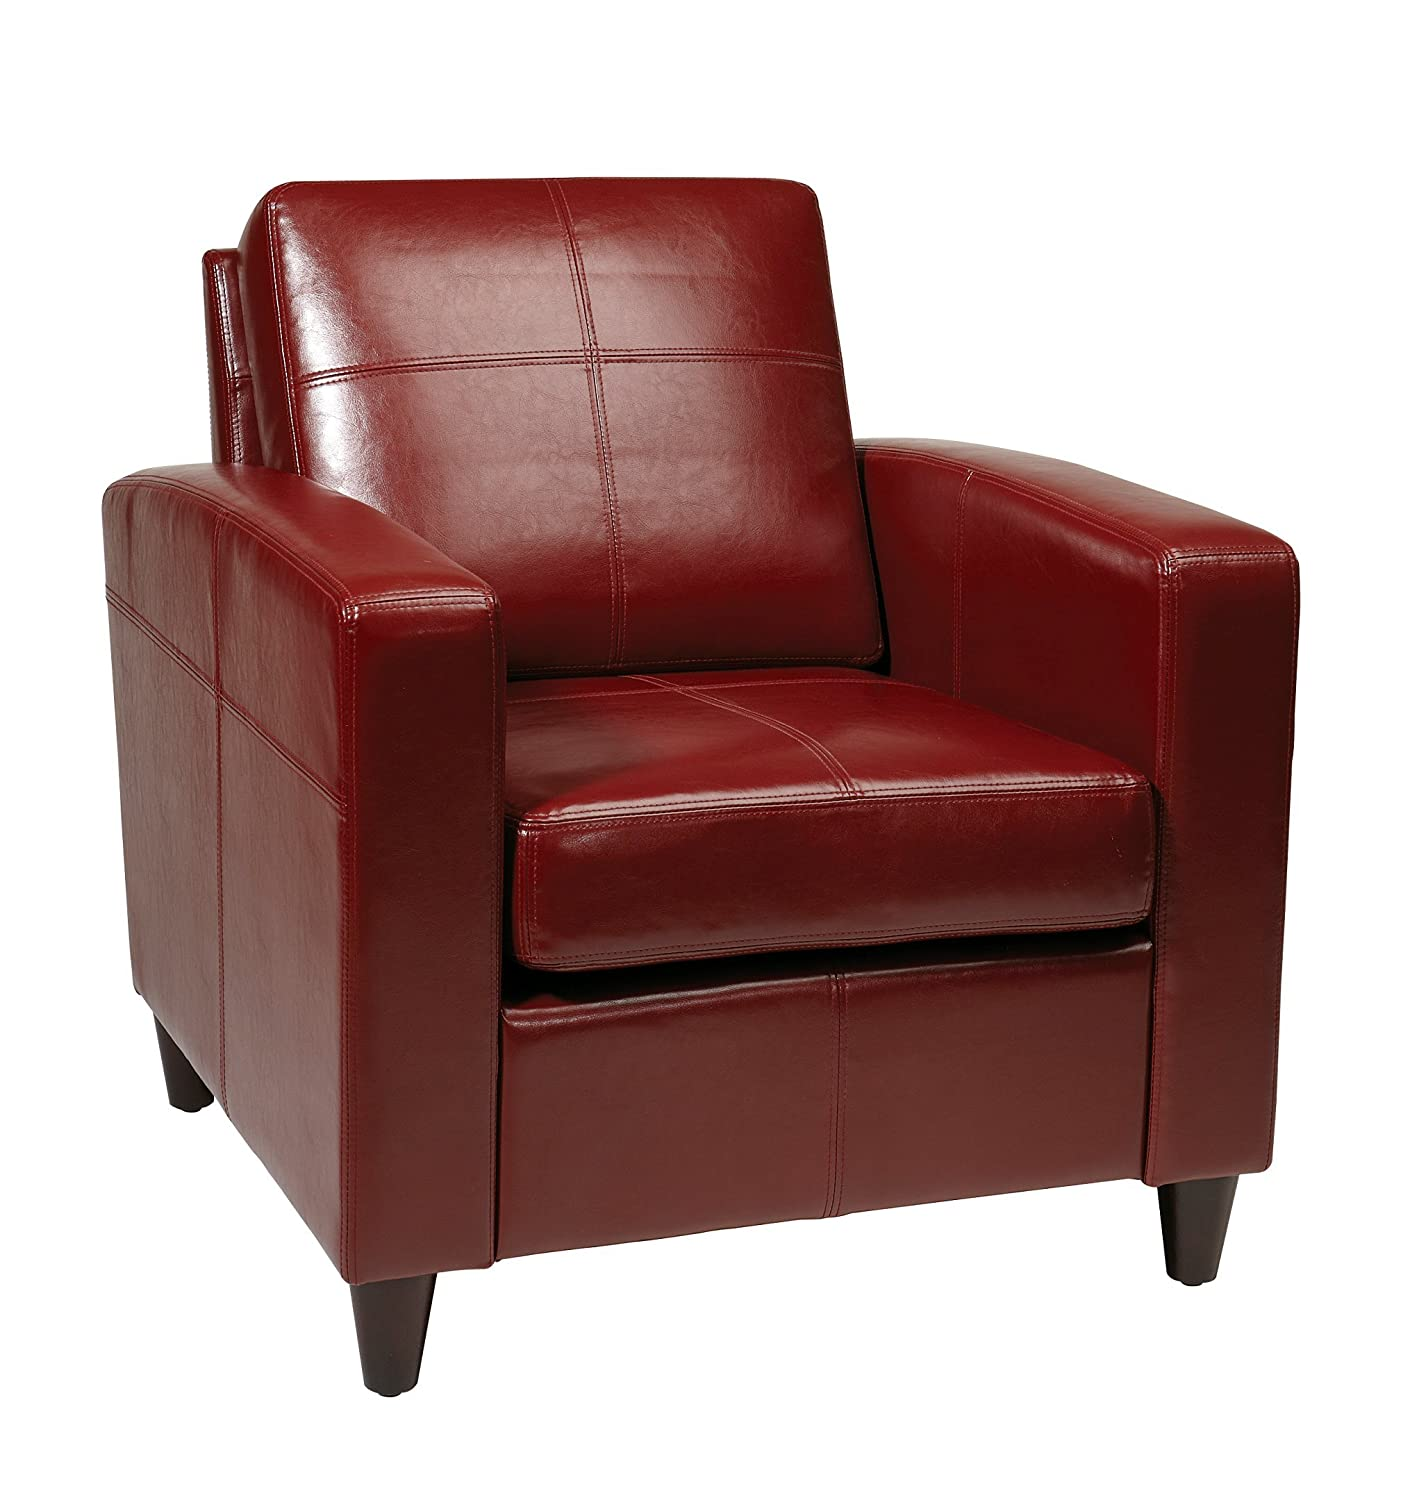 Amazon AVE SIX Bonded Leather Venus Club Chair with Solid